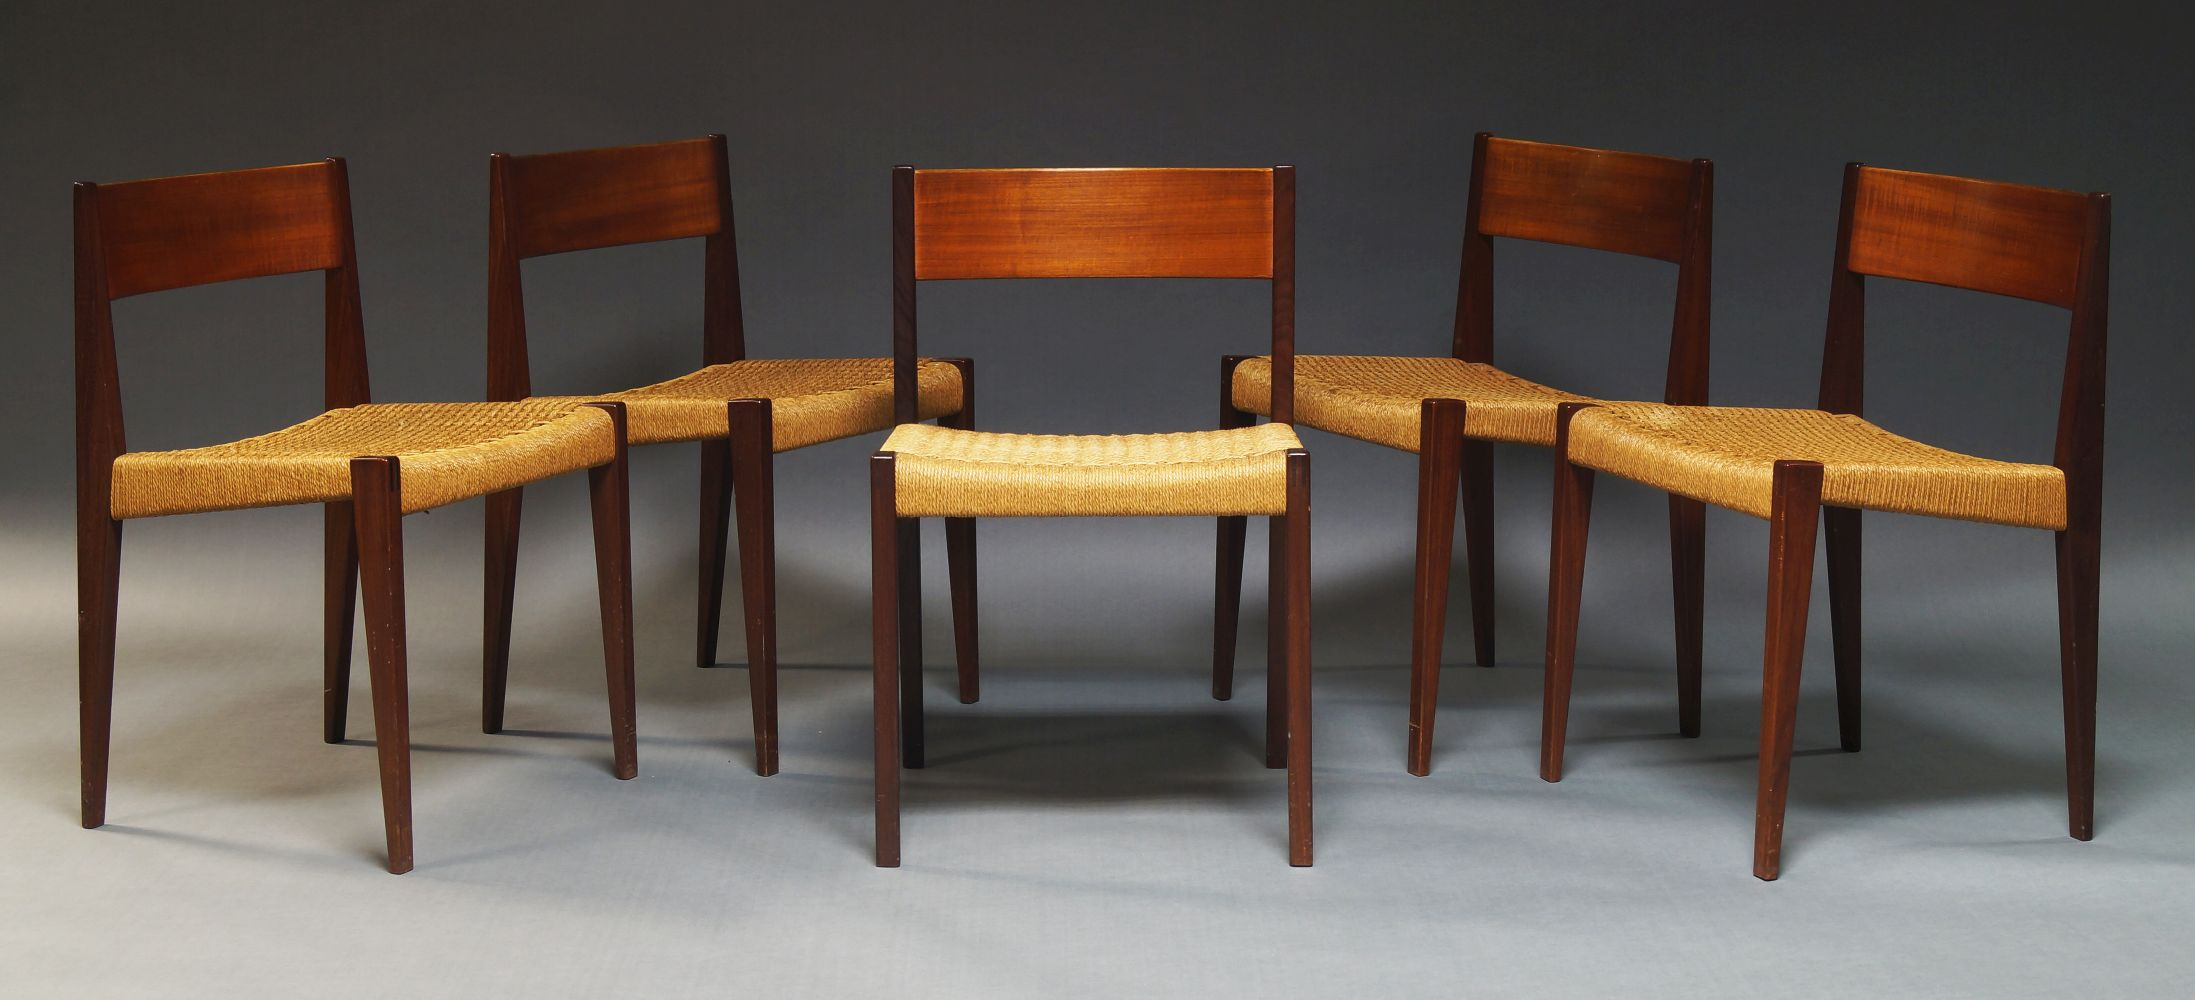 A set of five Danish teak dining chairs, c.1960 with curved backrests and woven cord seats on